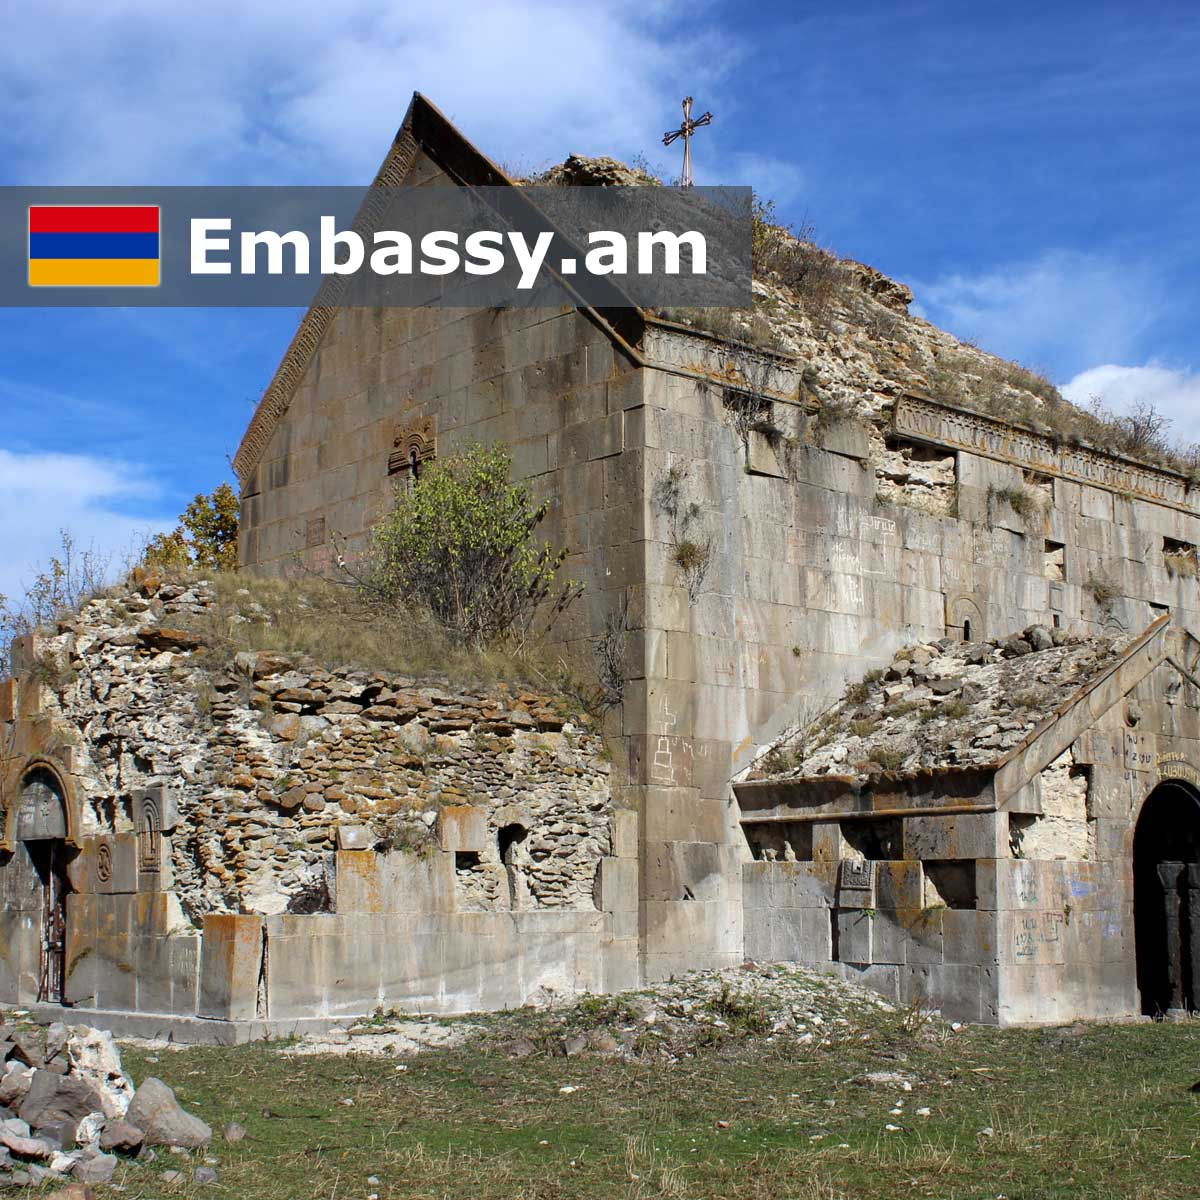 Meghradzor - Hotels in Armenia - Embassy.am